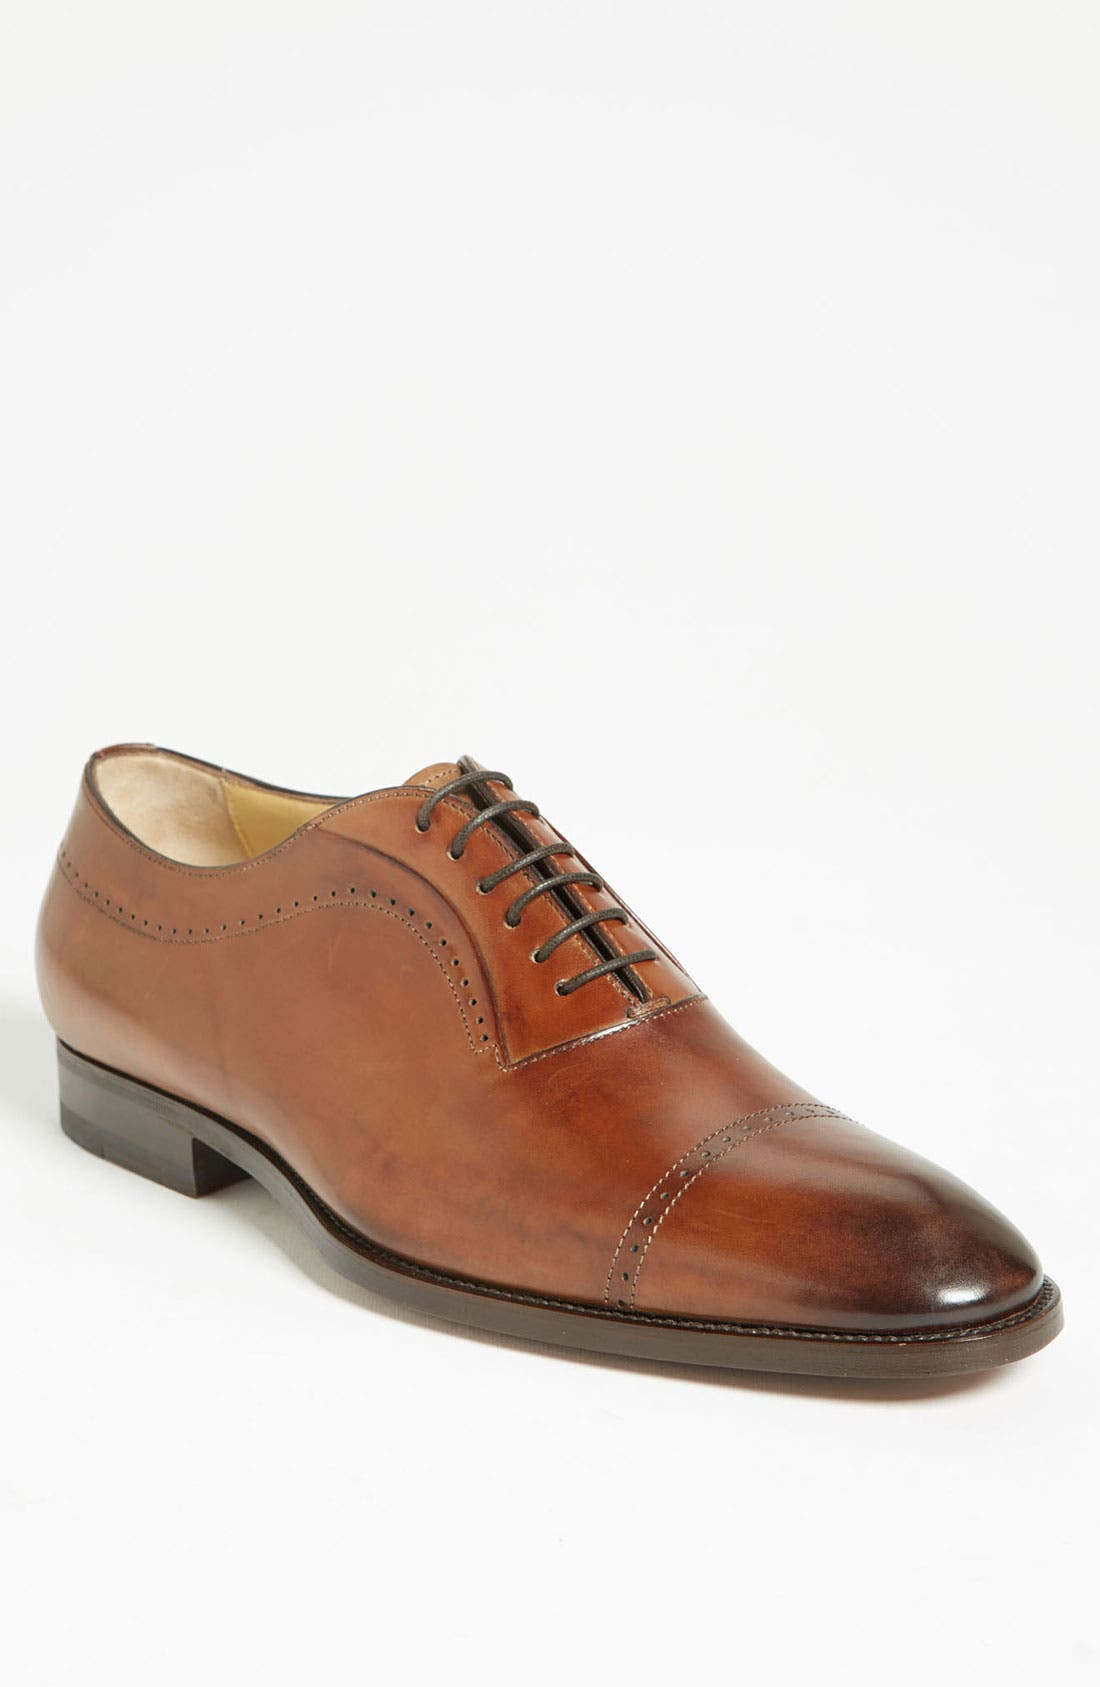 Alternate Image 1 Selected - Santoni 'Radcliffe' Cap Toe Oxford